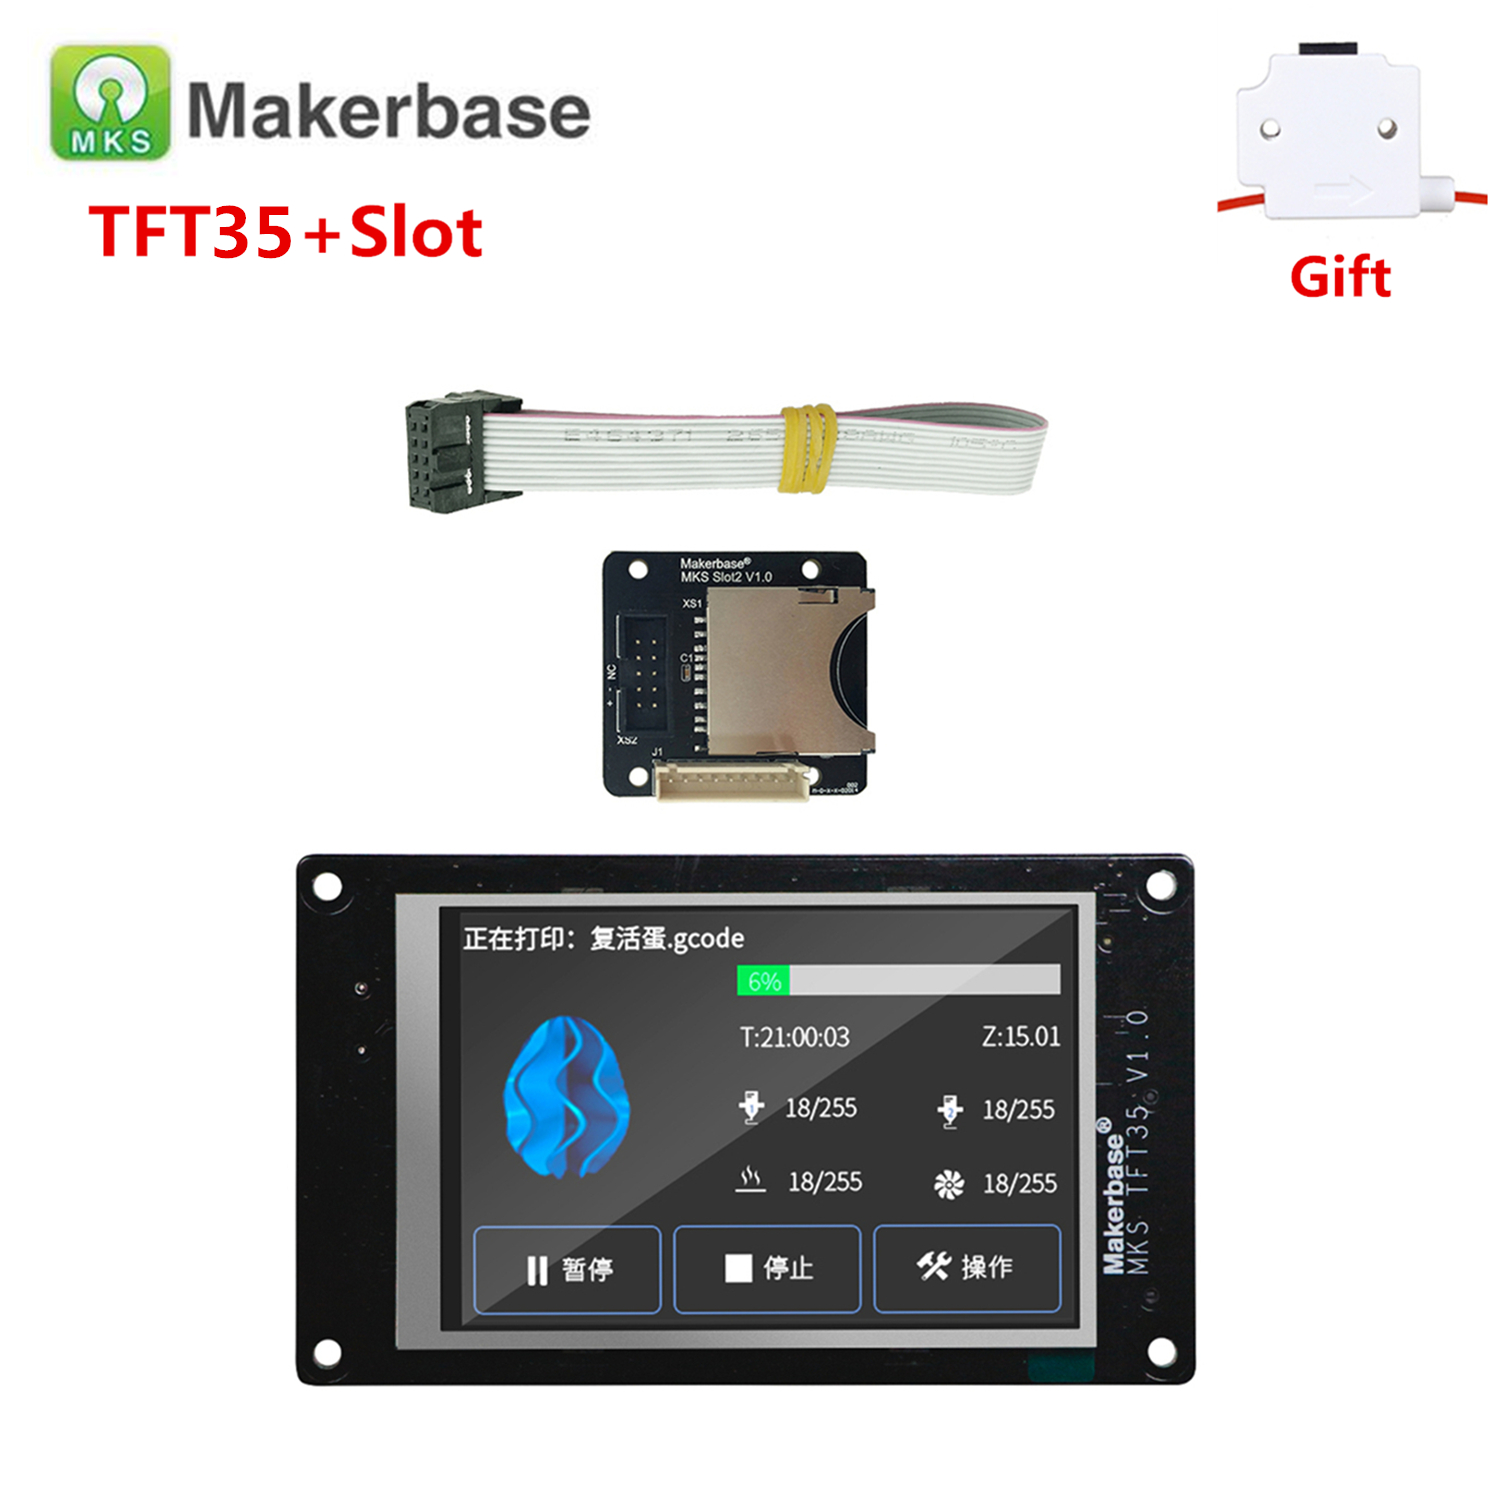 3d Printer Display Supplies MKS TFT35 V1.0 Touch Screen + MKS Slot2 Expansion SD Card Reader 3.5 Inch LCD For Creality Cr-10s